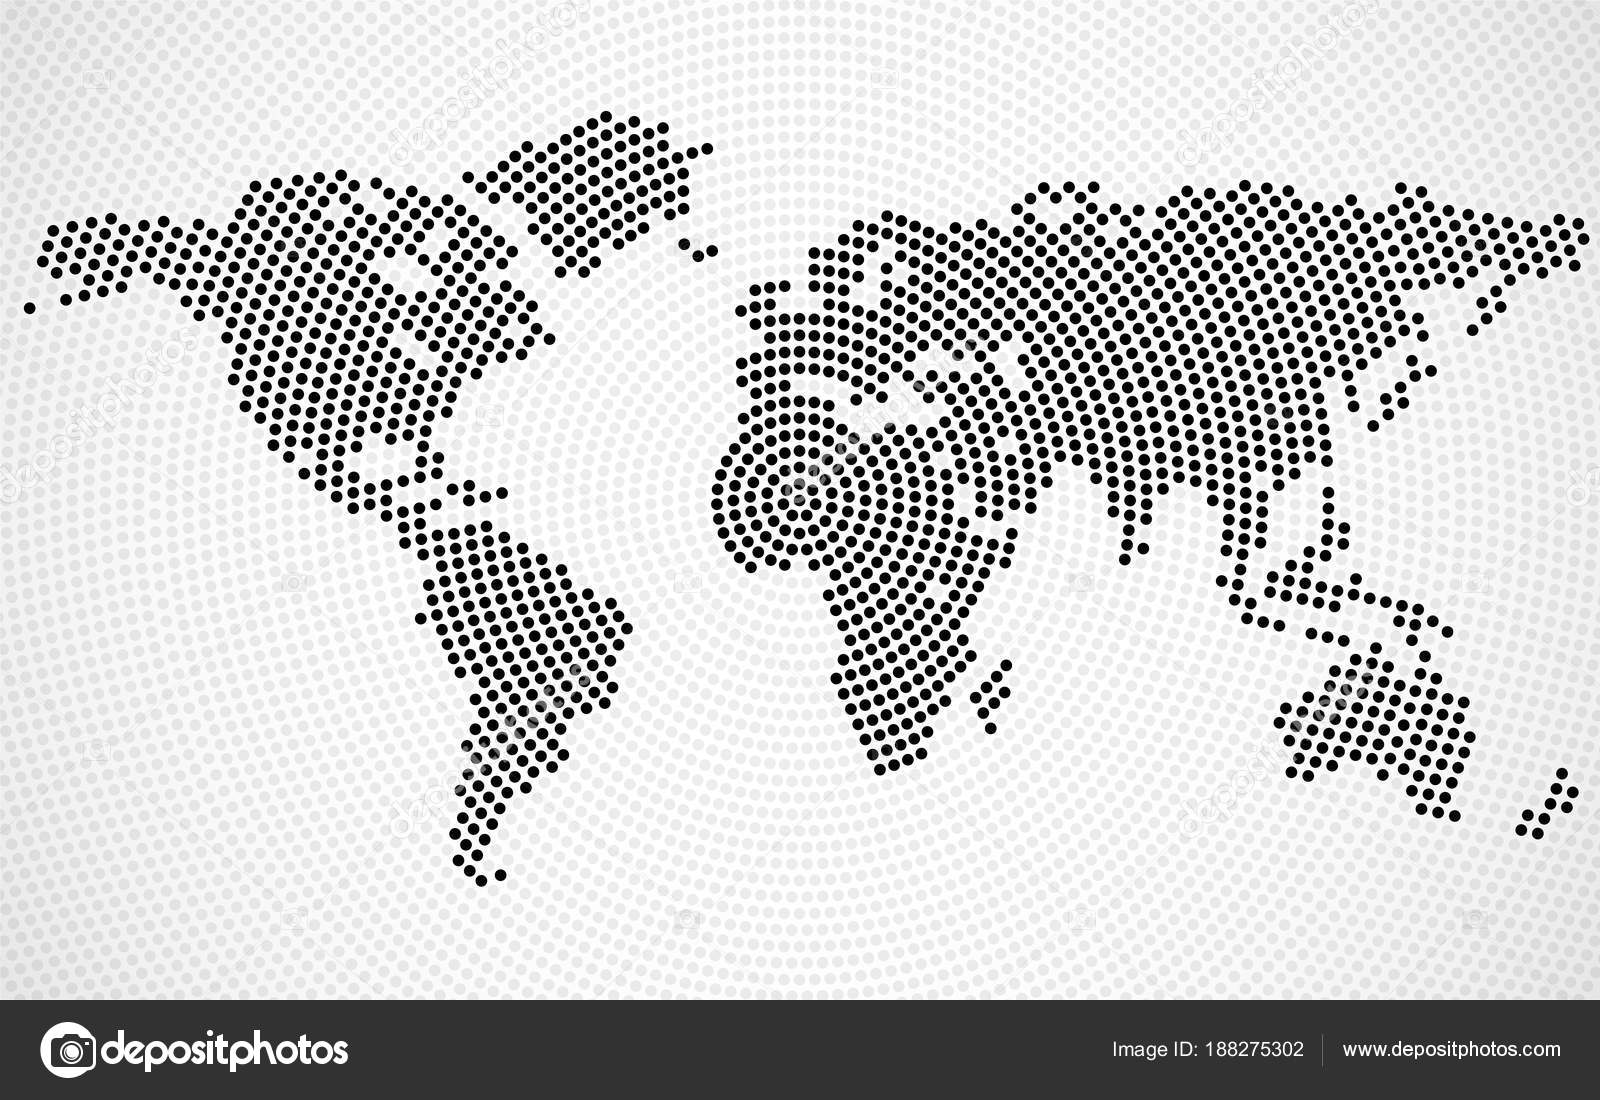 Abstract world map of radial dots vector stock vector abstract world map of radial dots vector stock vector gumiabroncs Images